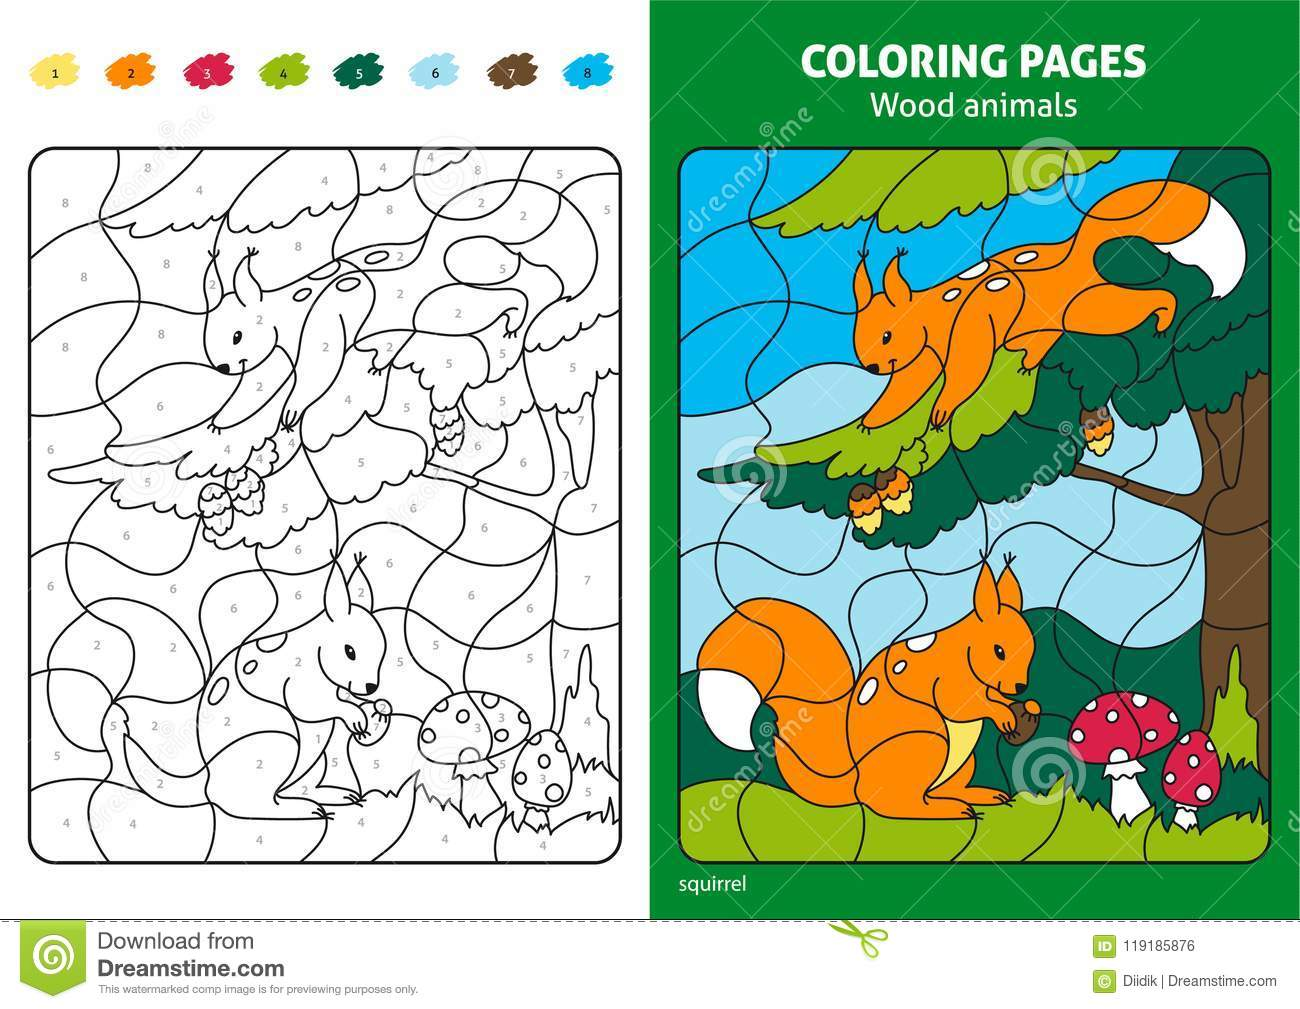 Wood Animals Coloring Page For Kids Squirrels In Forest